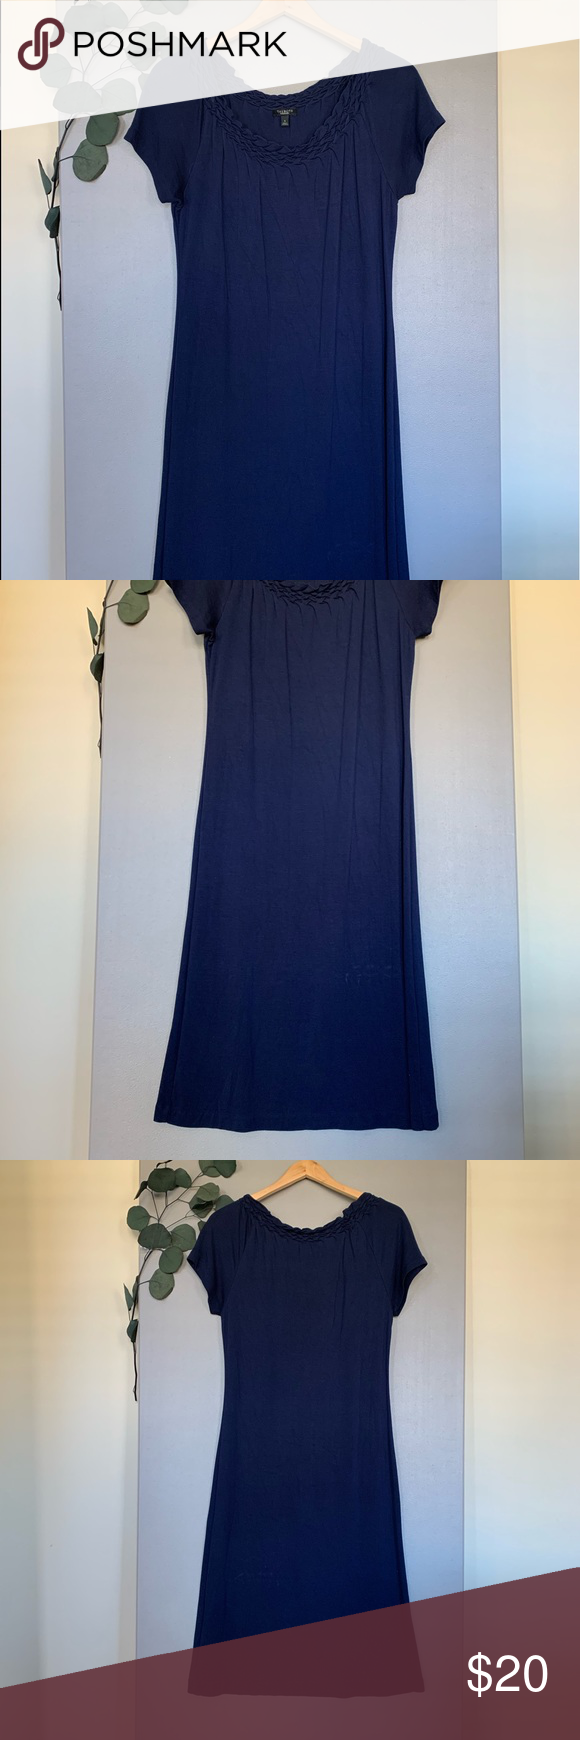 "Talbots Shift Dress Short Sleeve S Size Navy Blue This beautiful dress is in excellent condition! Looks like new! Soft stretchy material. Chest 18"" Waist 16"" Length 42"" **All measurements taken flat ** Dresses Midi #navyblueshortdress"